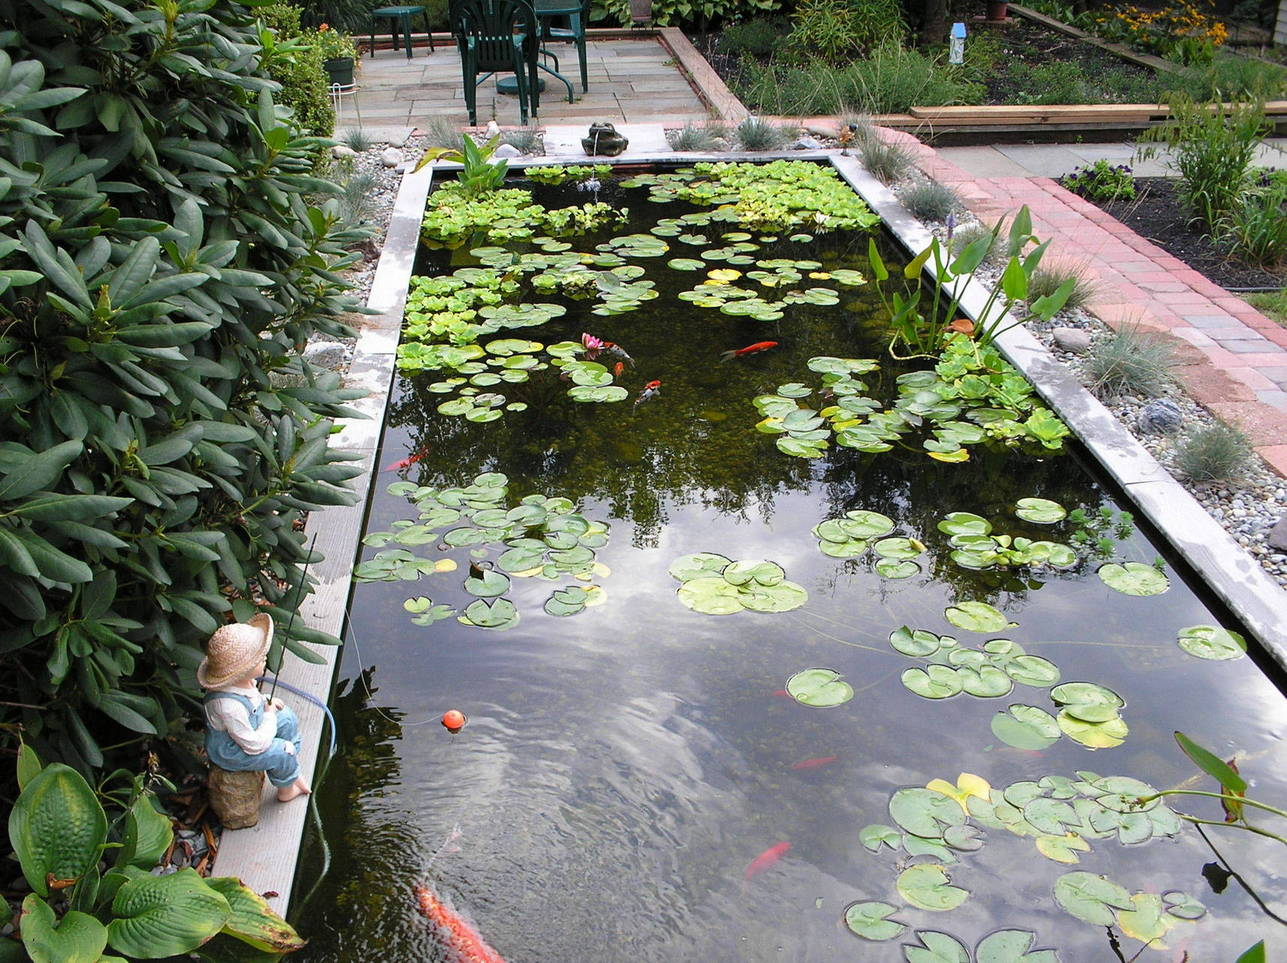 Big koi fish pond design ideas home trendy for Garden pond design plans